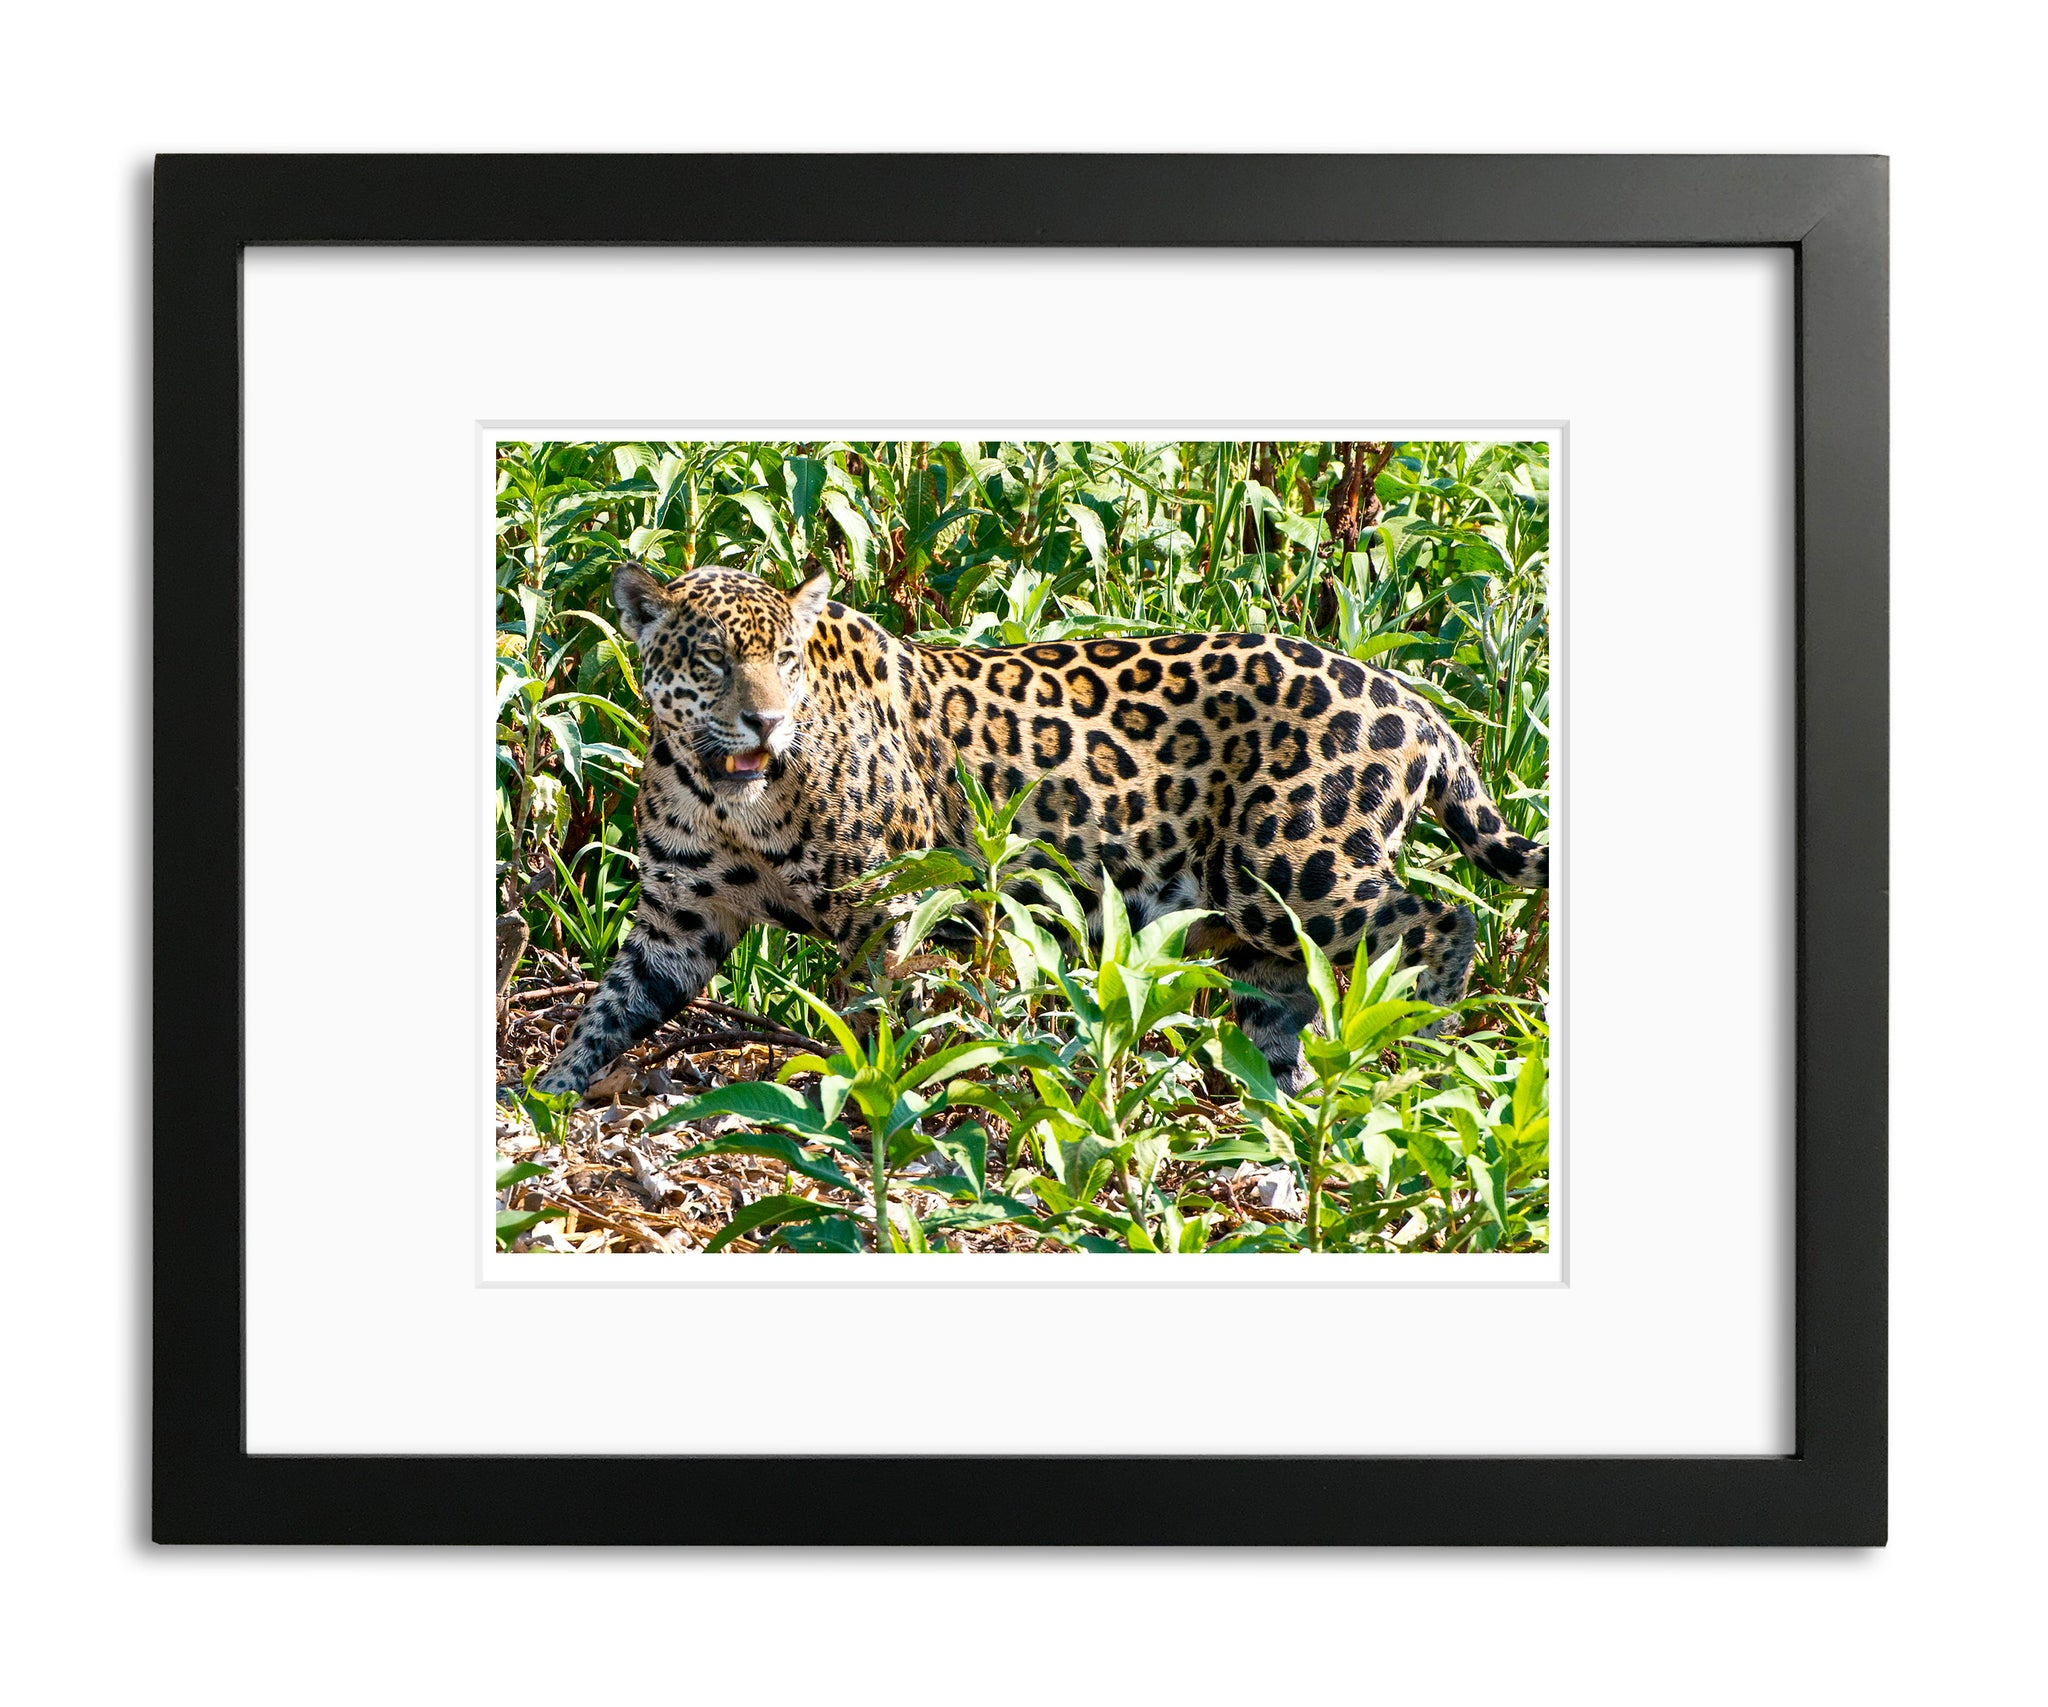 Fierce Cat, Jaguar, Pantanal, Brazil, by Robert Ross